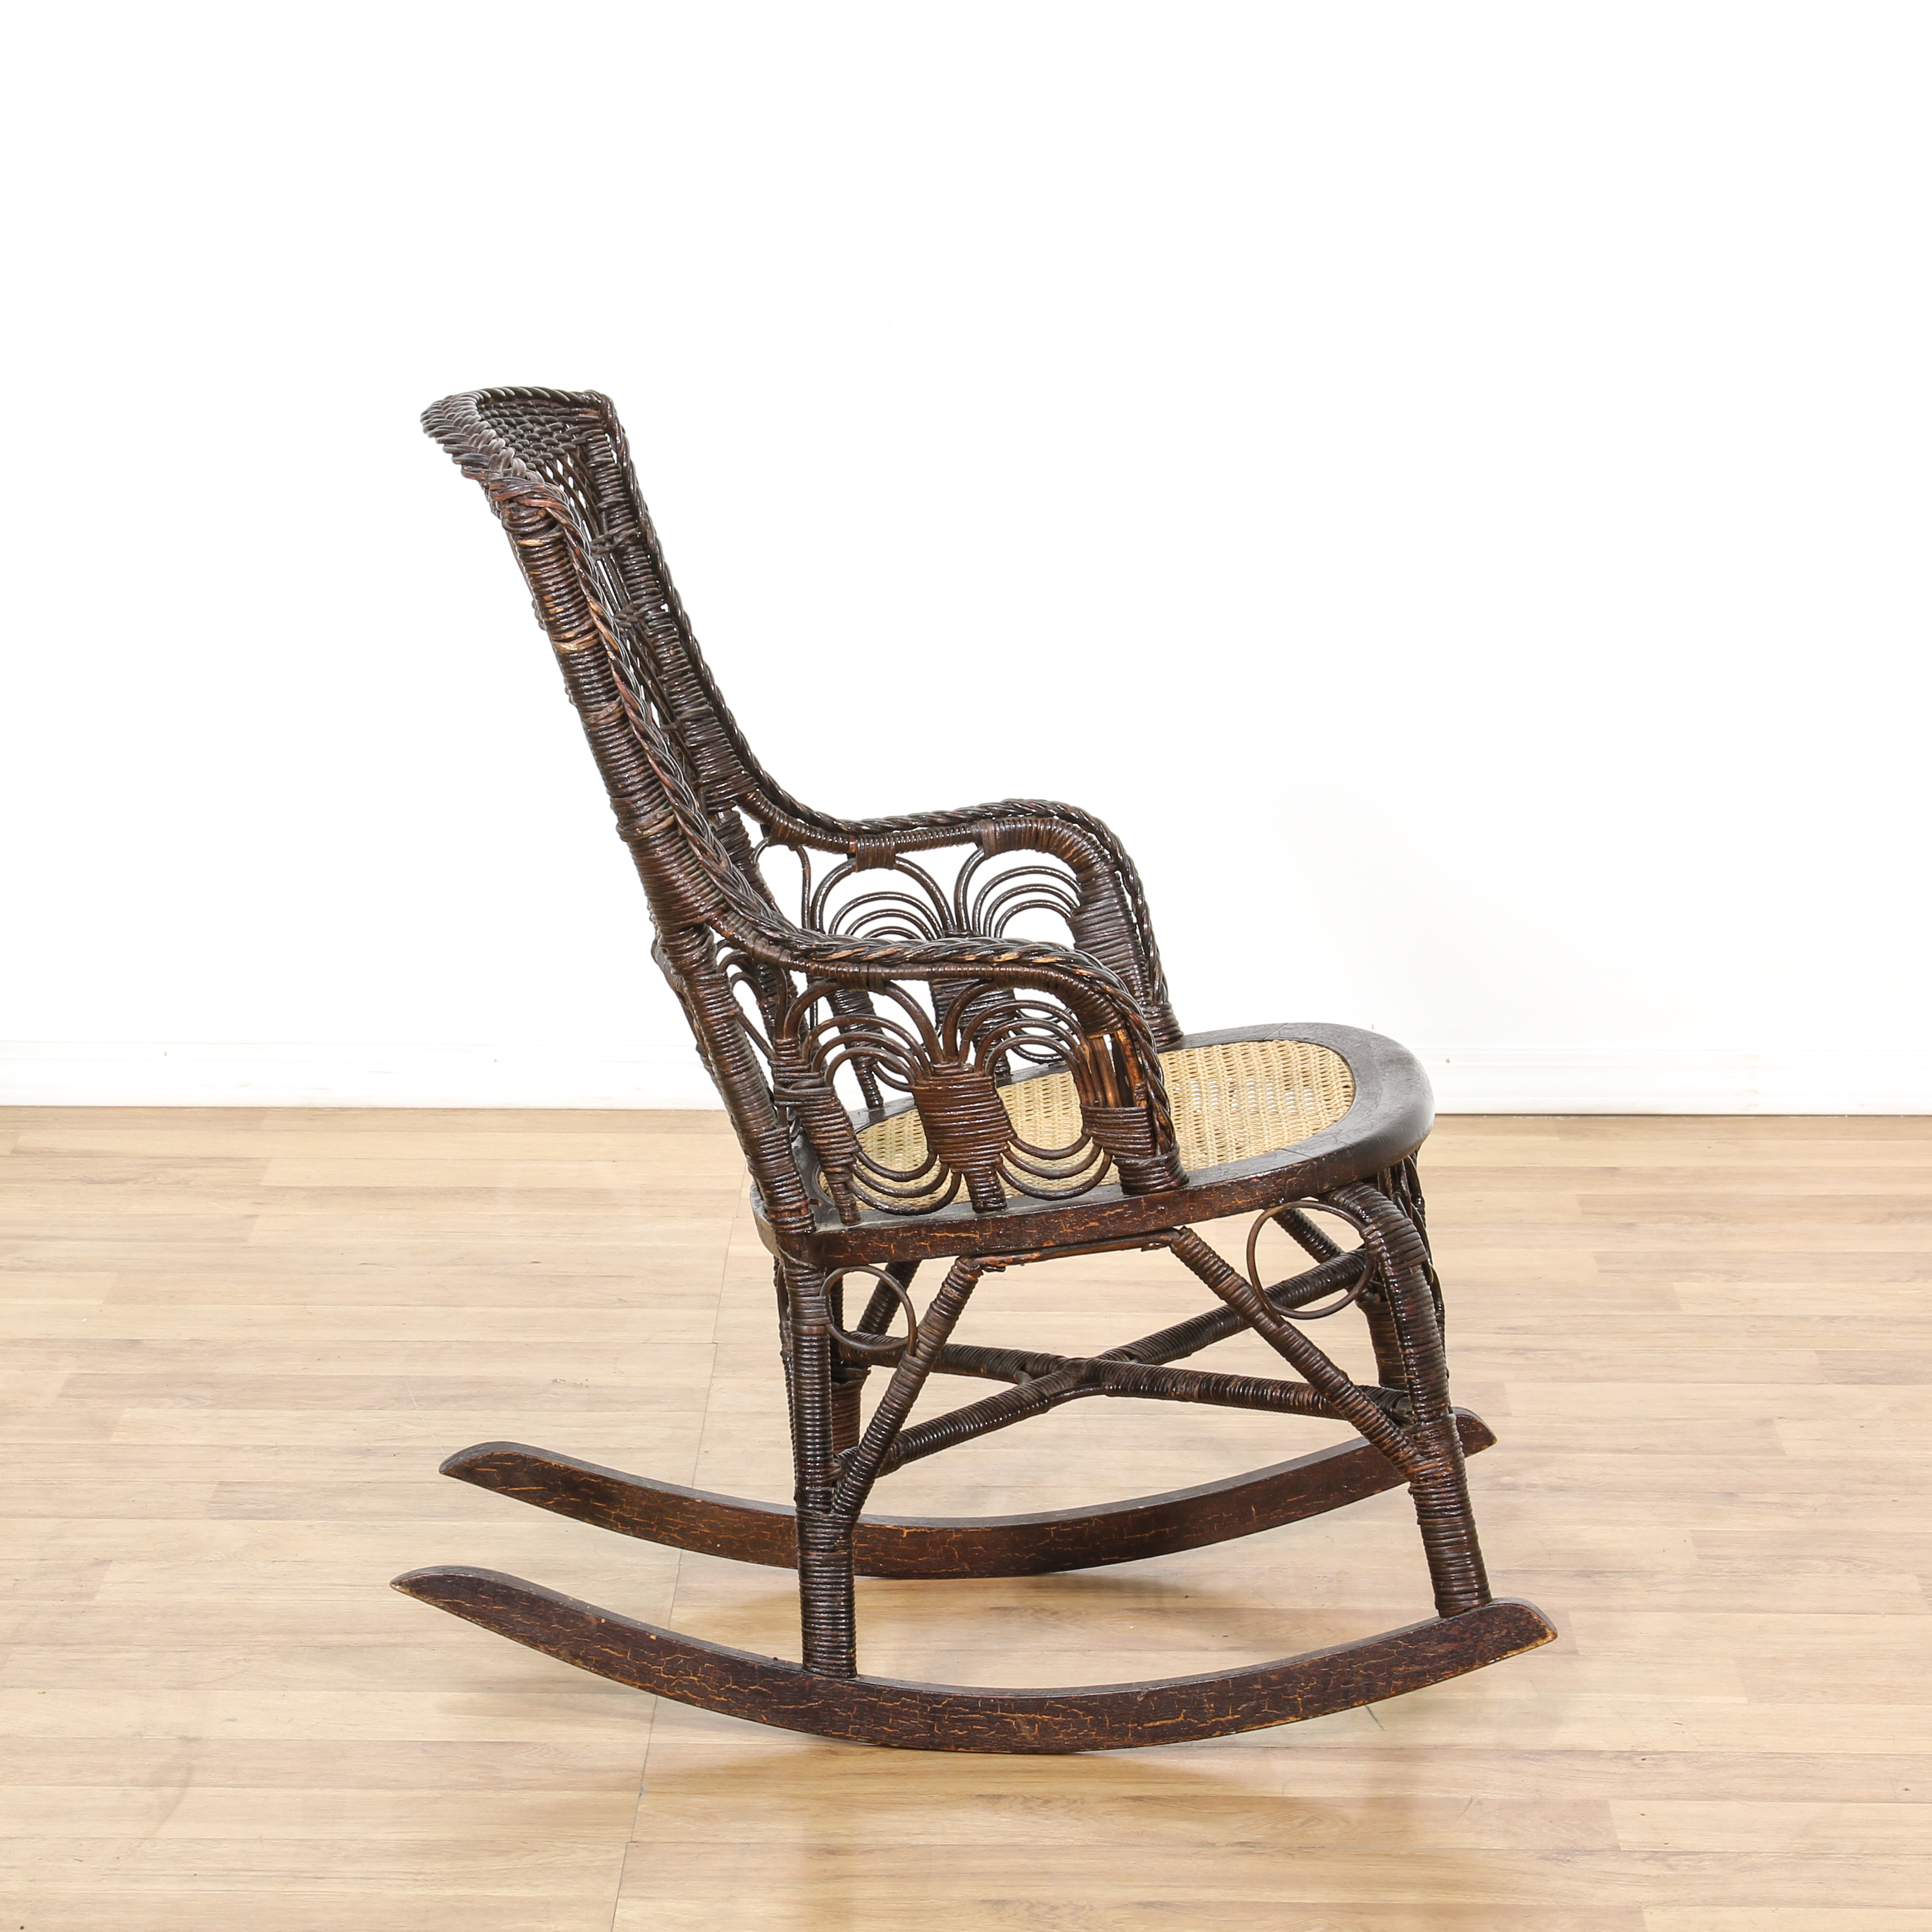 Black Wicker Rocking Chairs Black Wicker Rocking Chair Year Of Clean Water